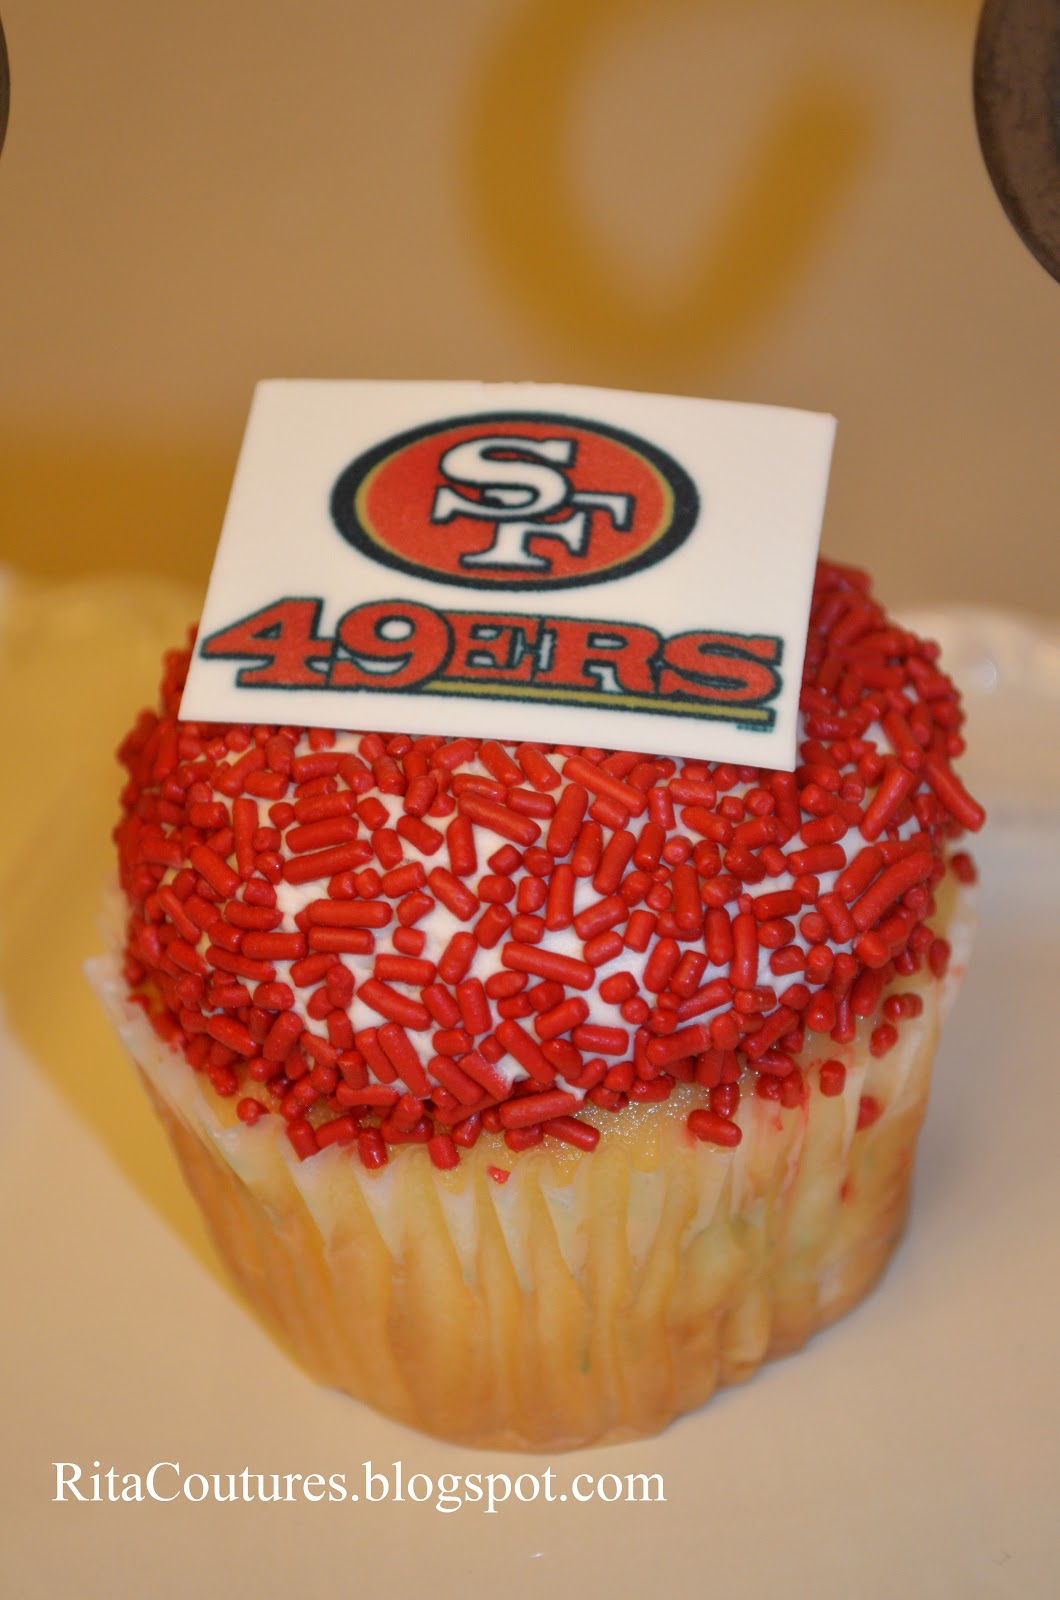 Rita Couture 49ers Superbowl Party